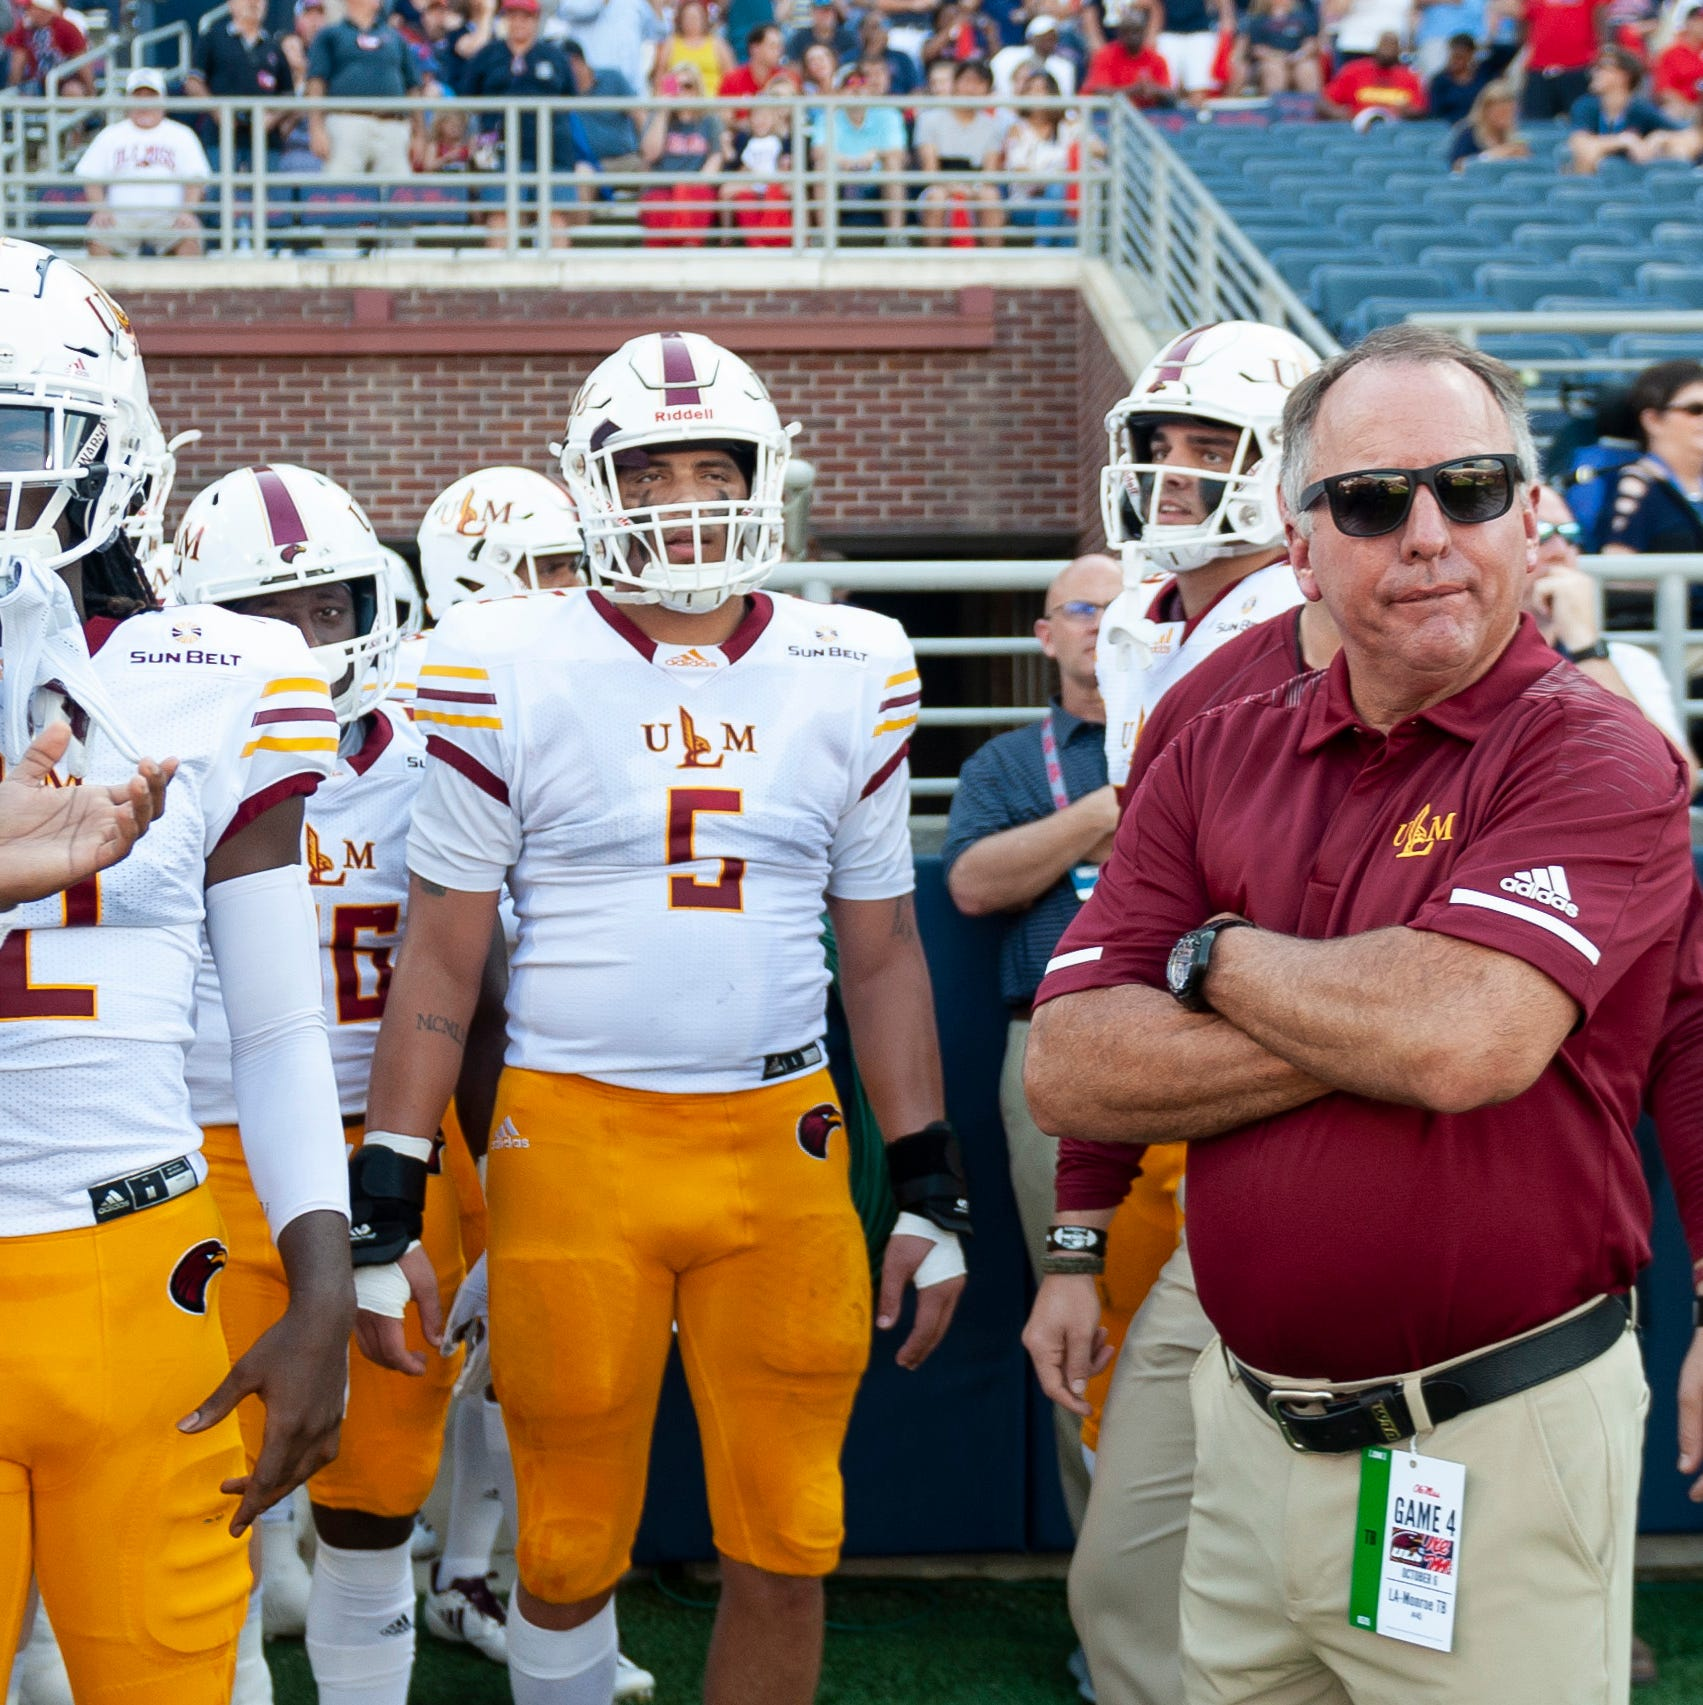 'It's one game': ULM not satisfied with win, wants more